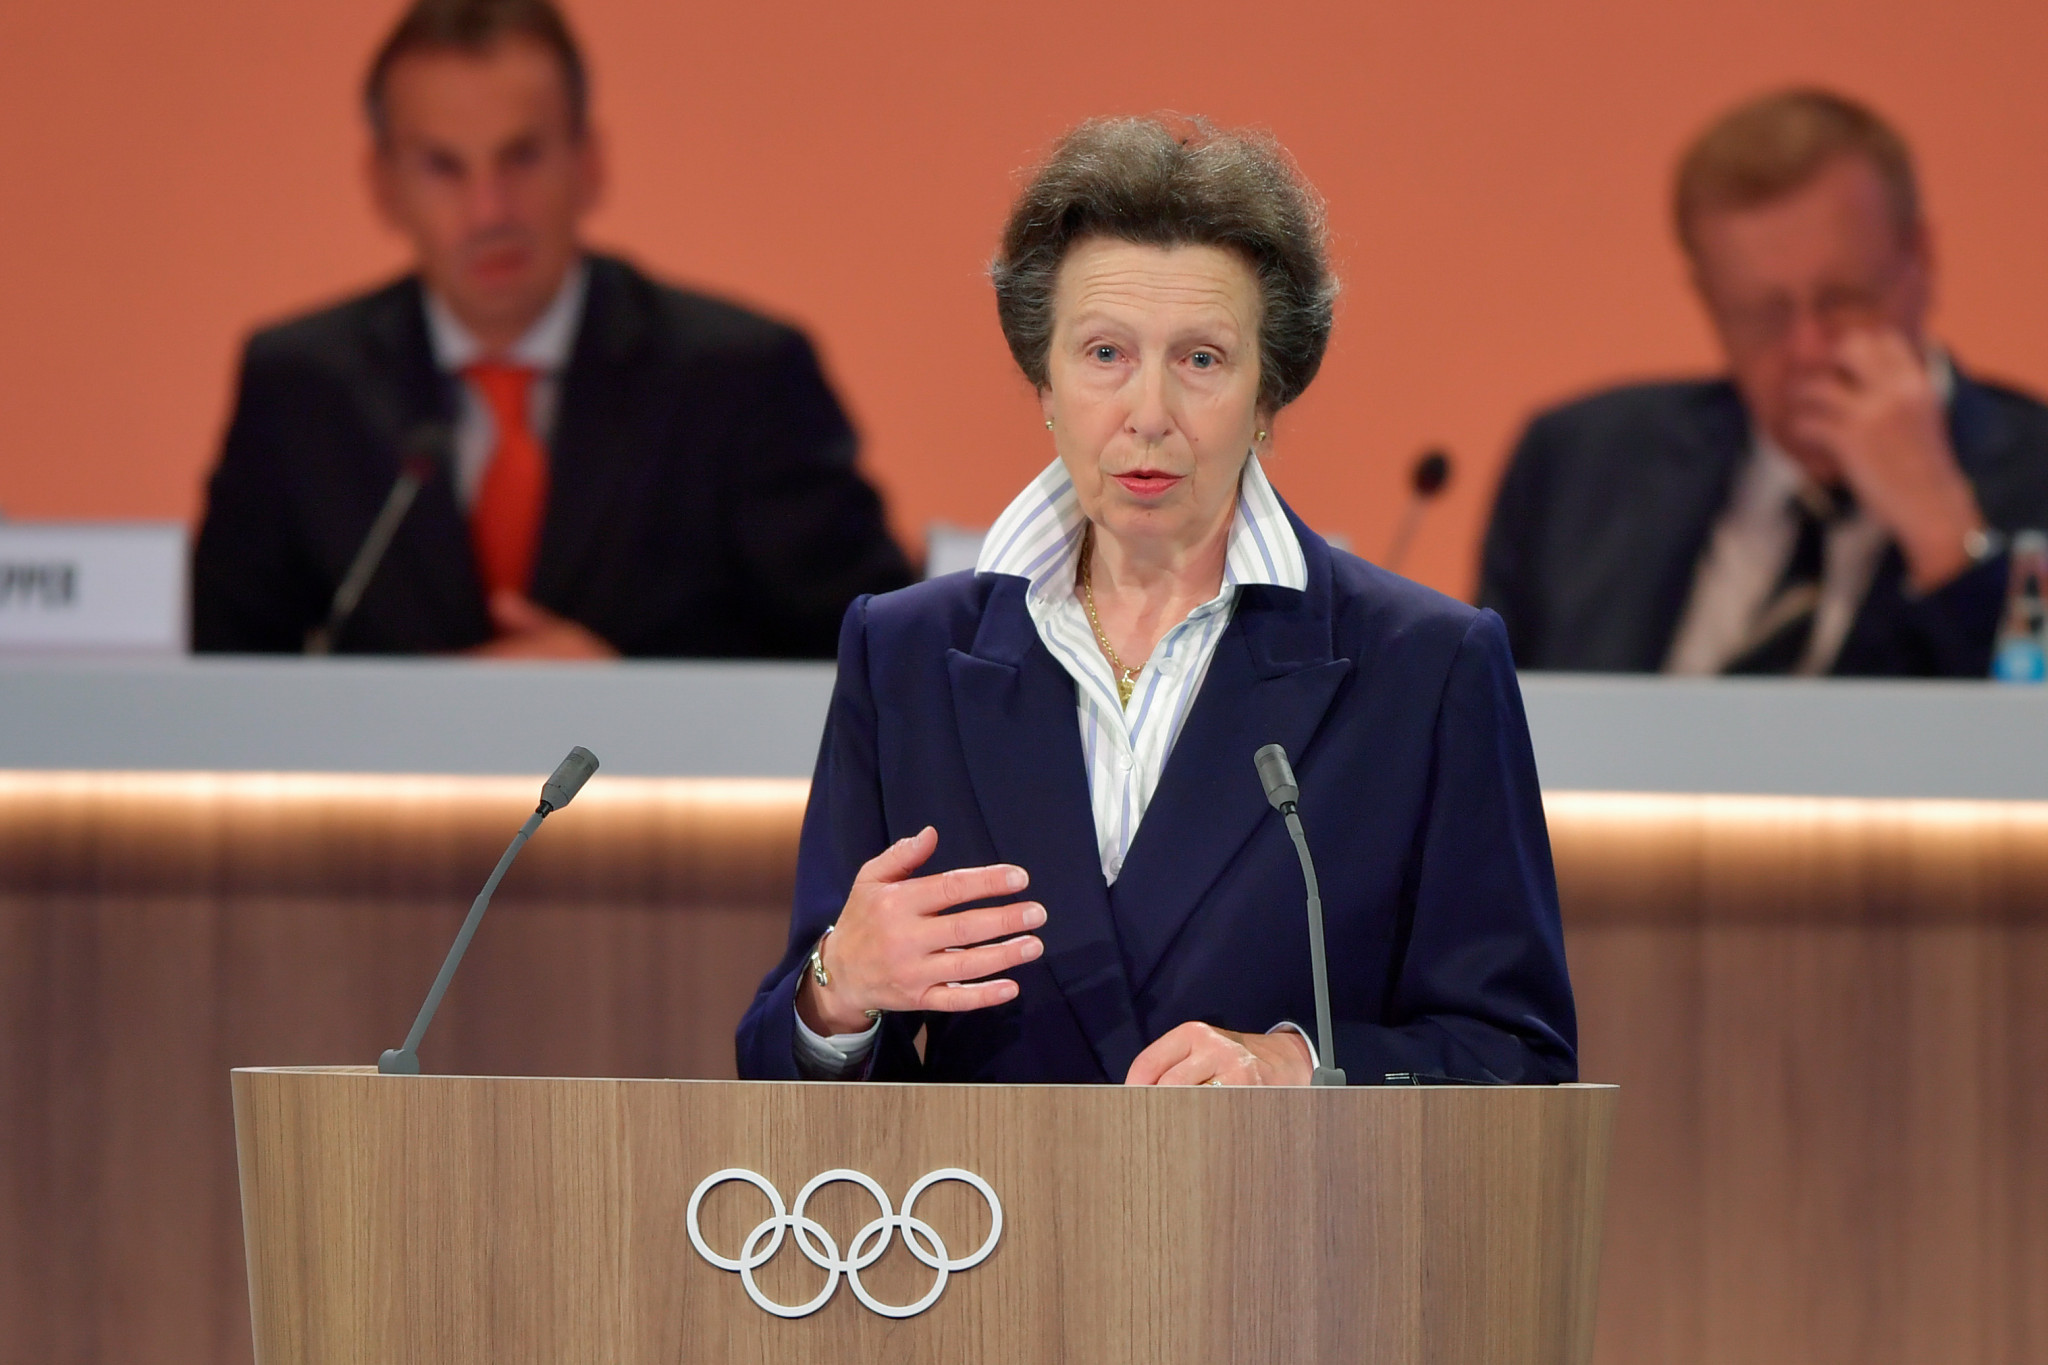 If elected, Alistair Brownlee would join British IOC members such as the Princess Royal ©Getty Images